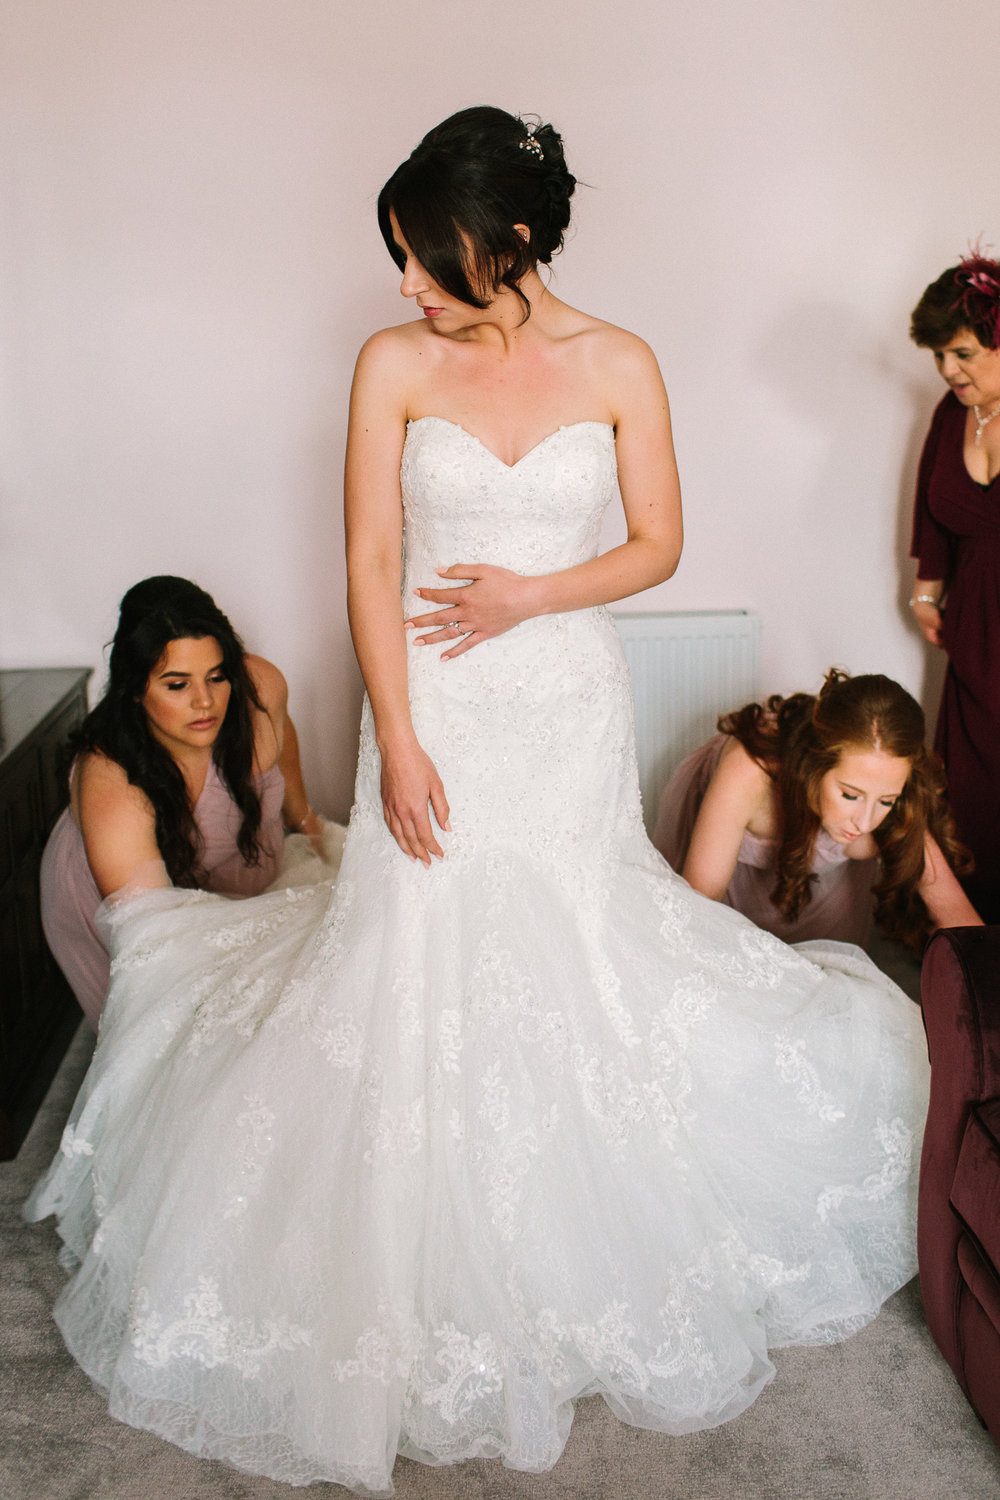 getting into the wedding dress